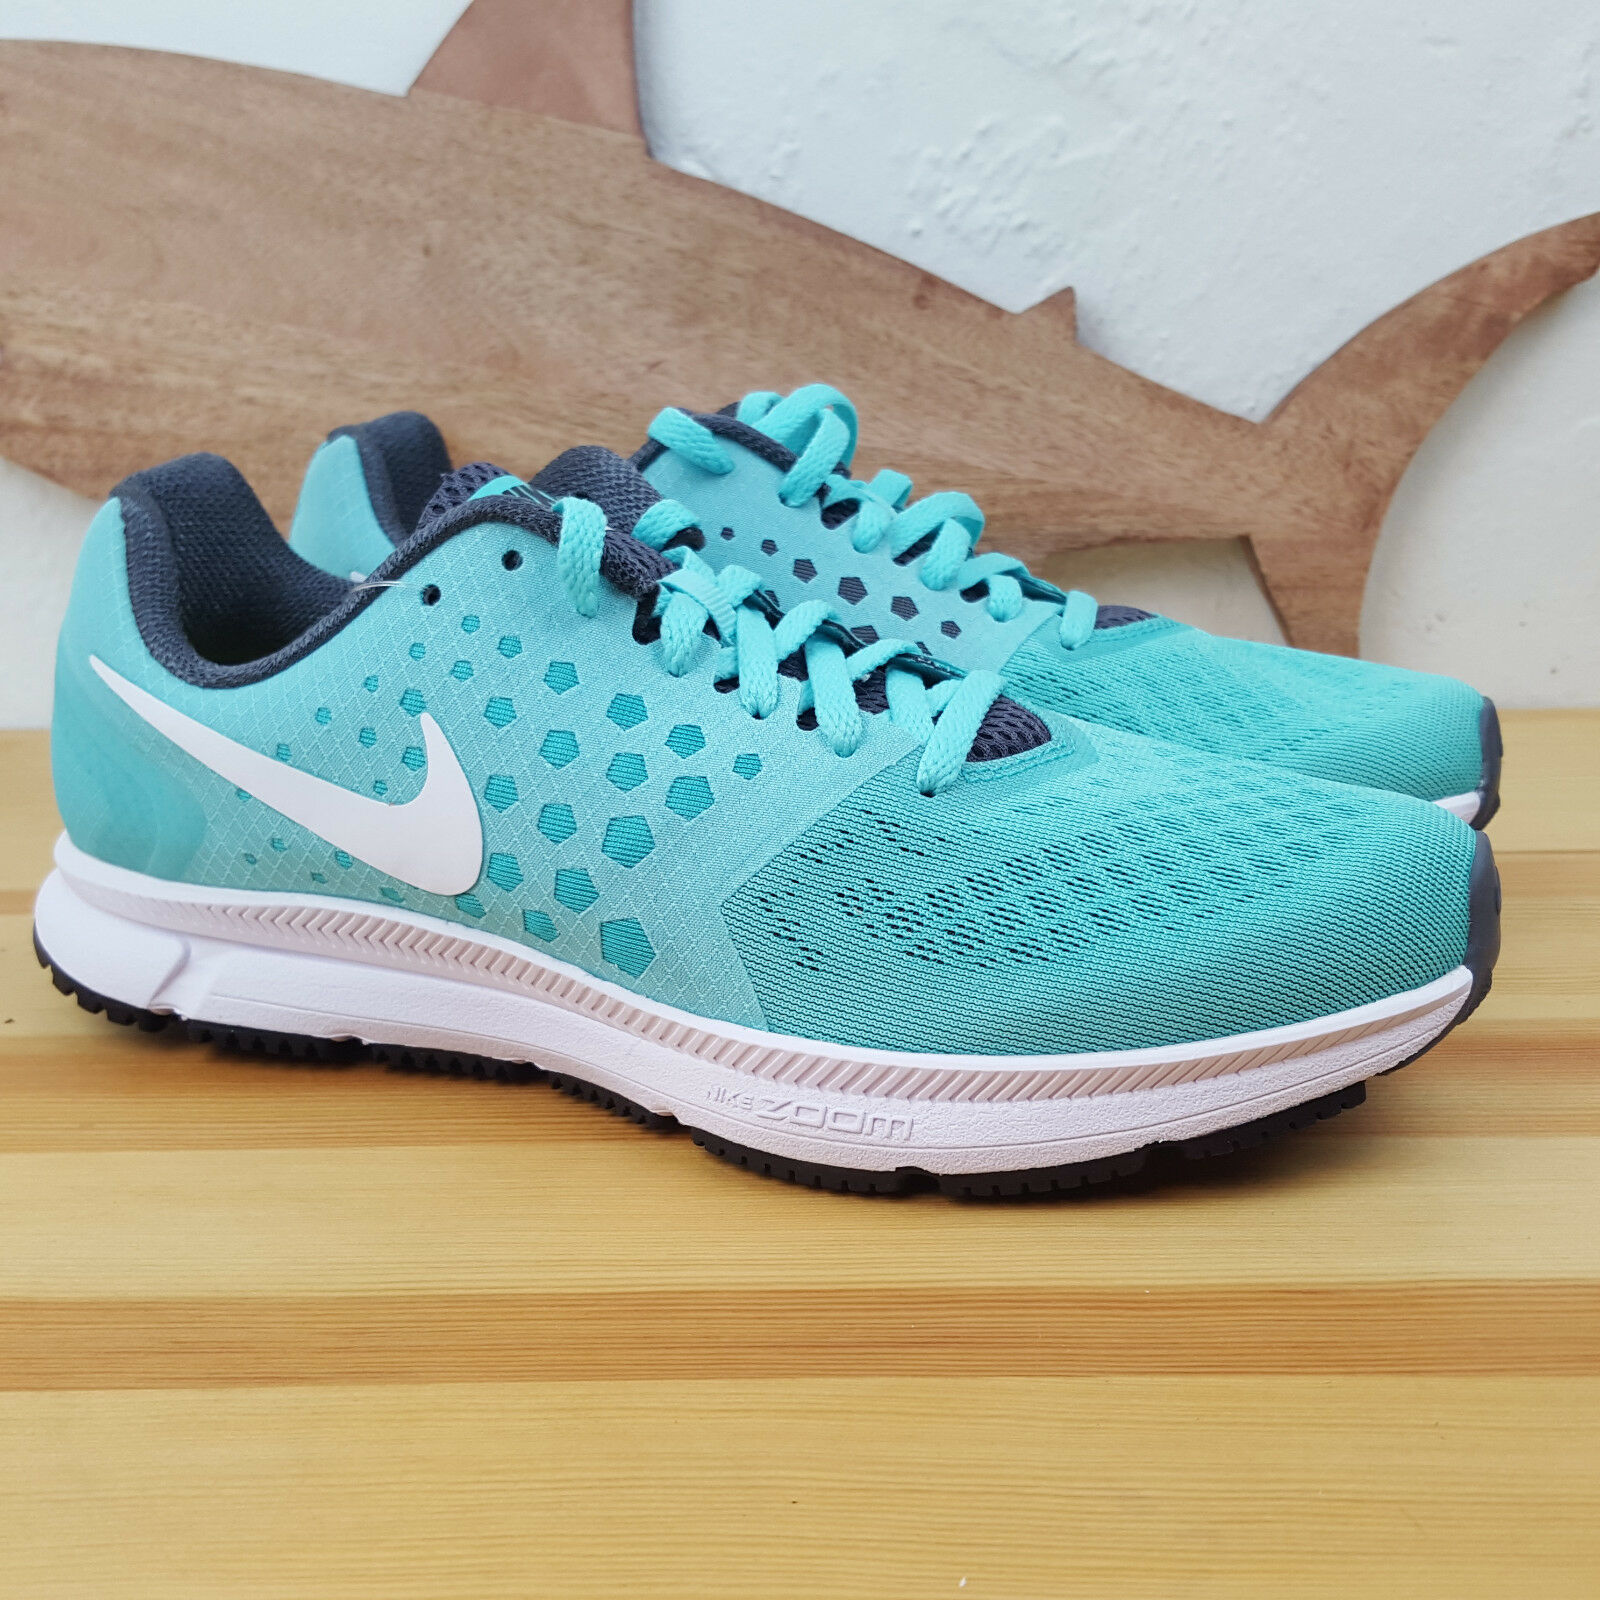 Nike Zoom Span Women′s Sz 8.5 Running Shoes 852430 302